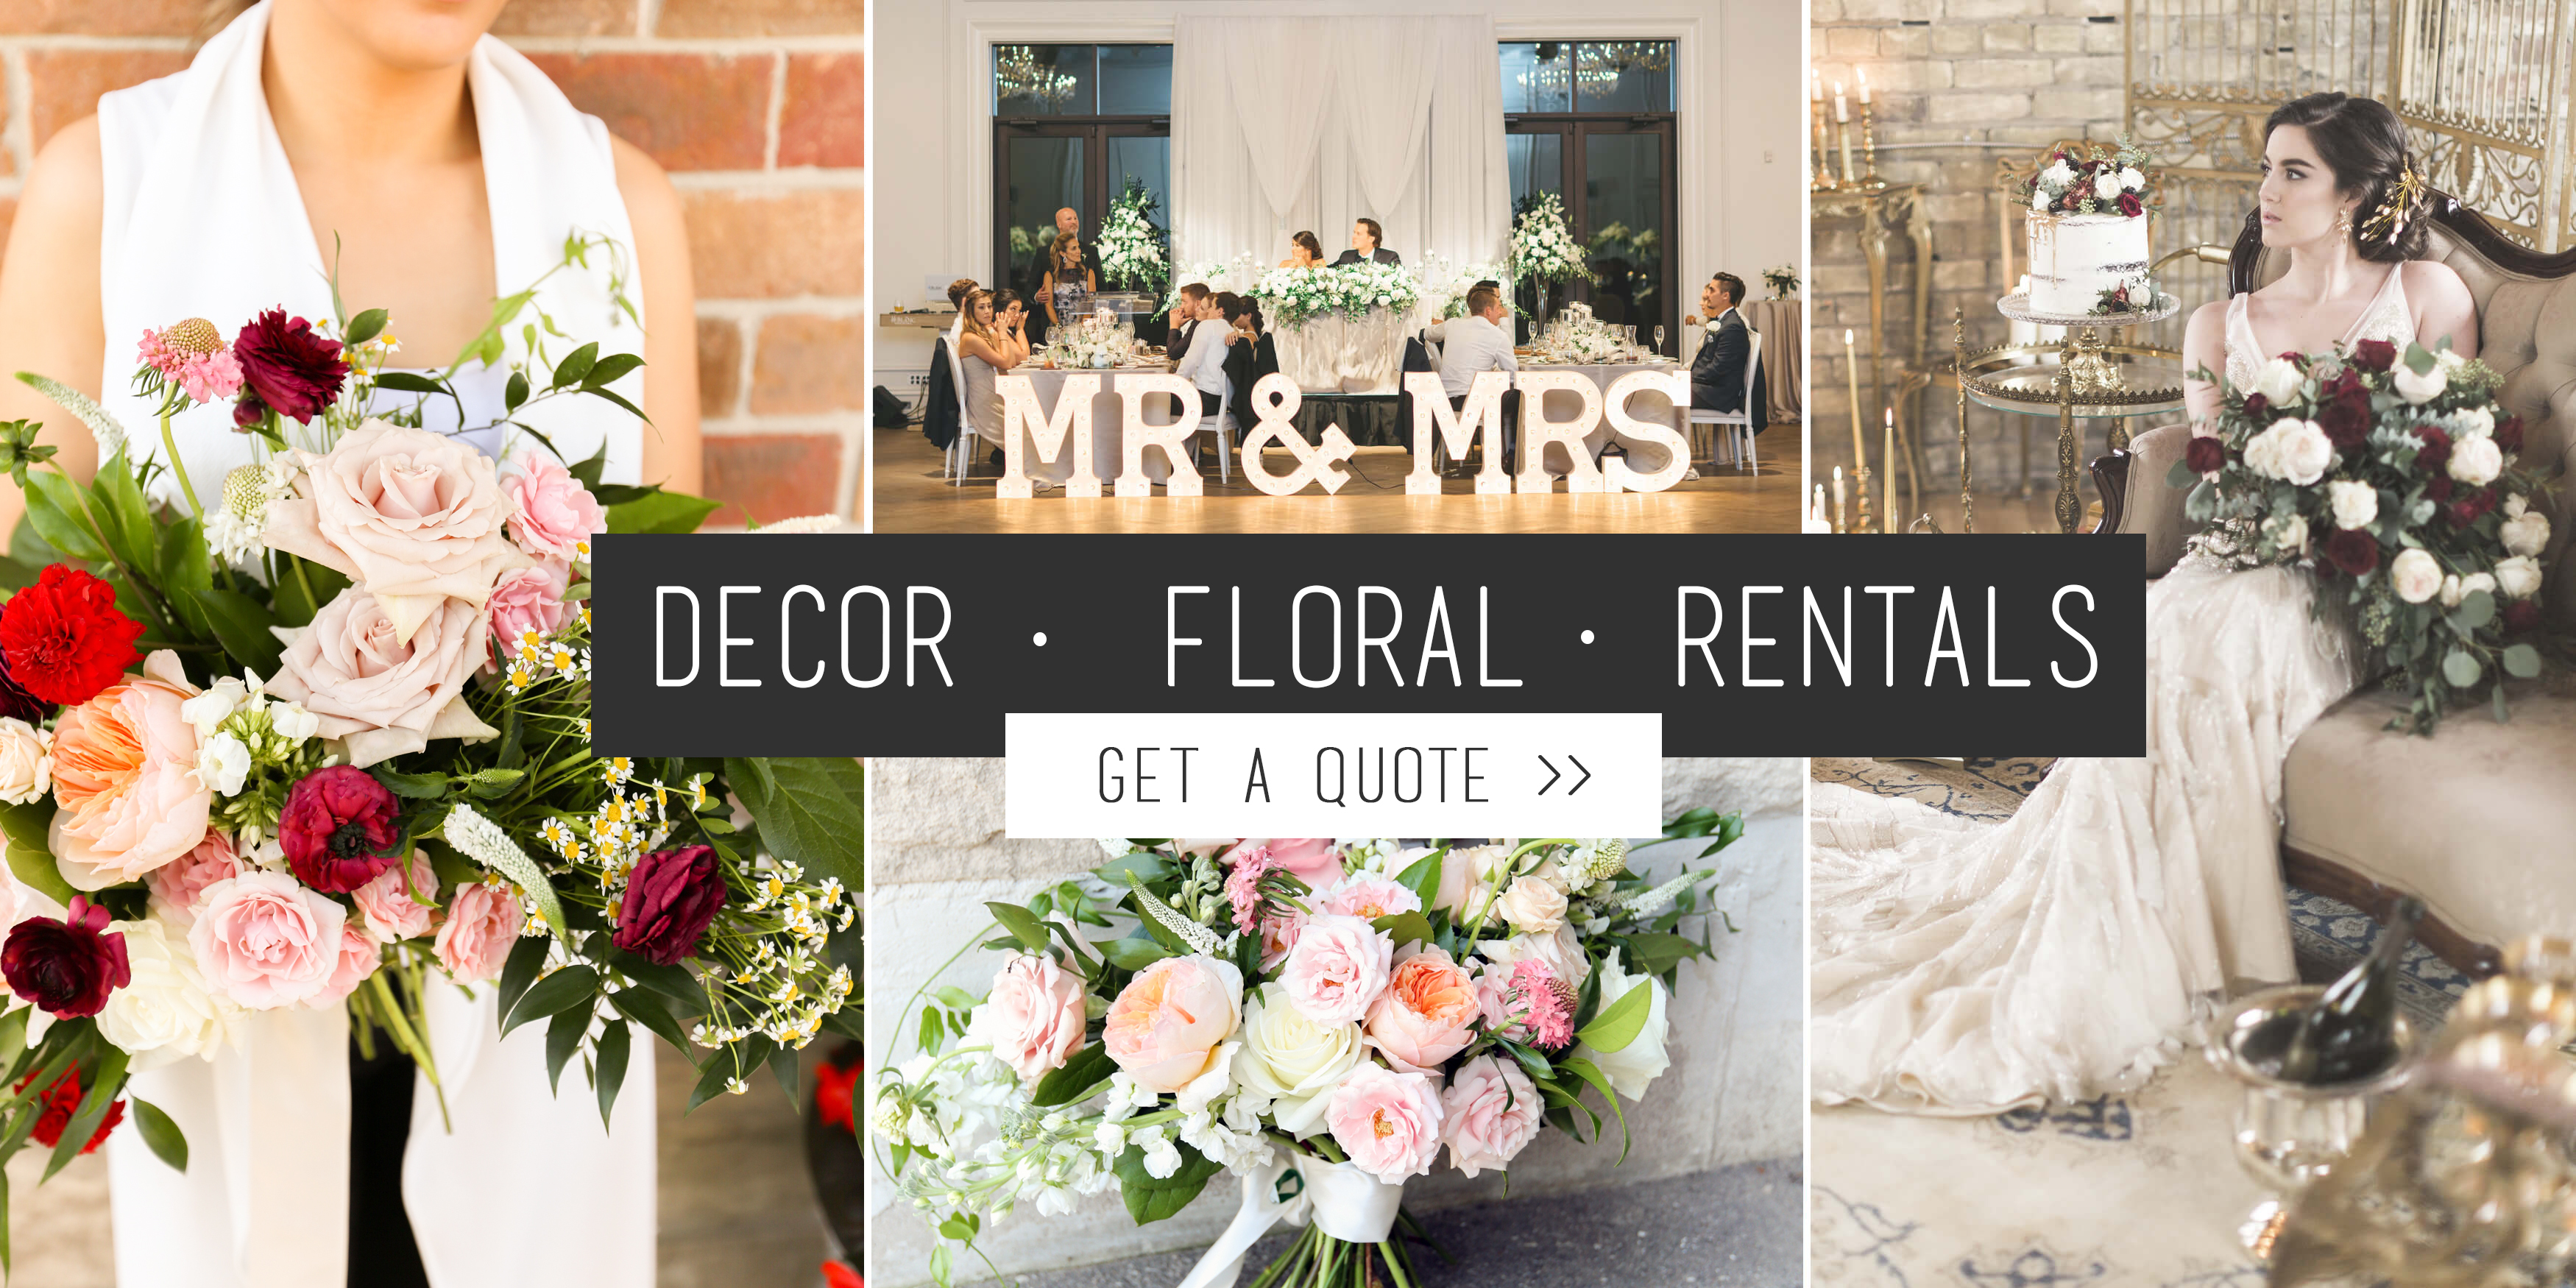 Toronto florist decorator event rentals events weddings gta vintagebash events and wedding decor floral event rentals junglespirit Choice Image